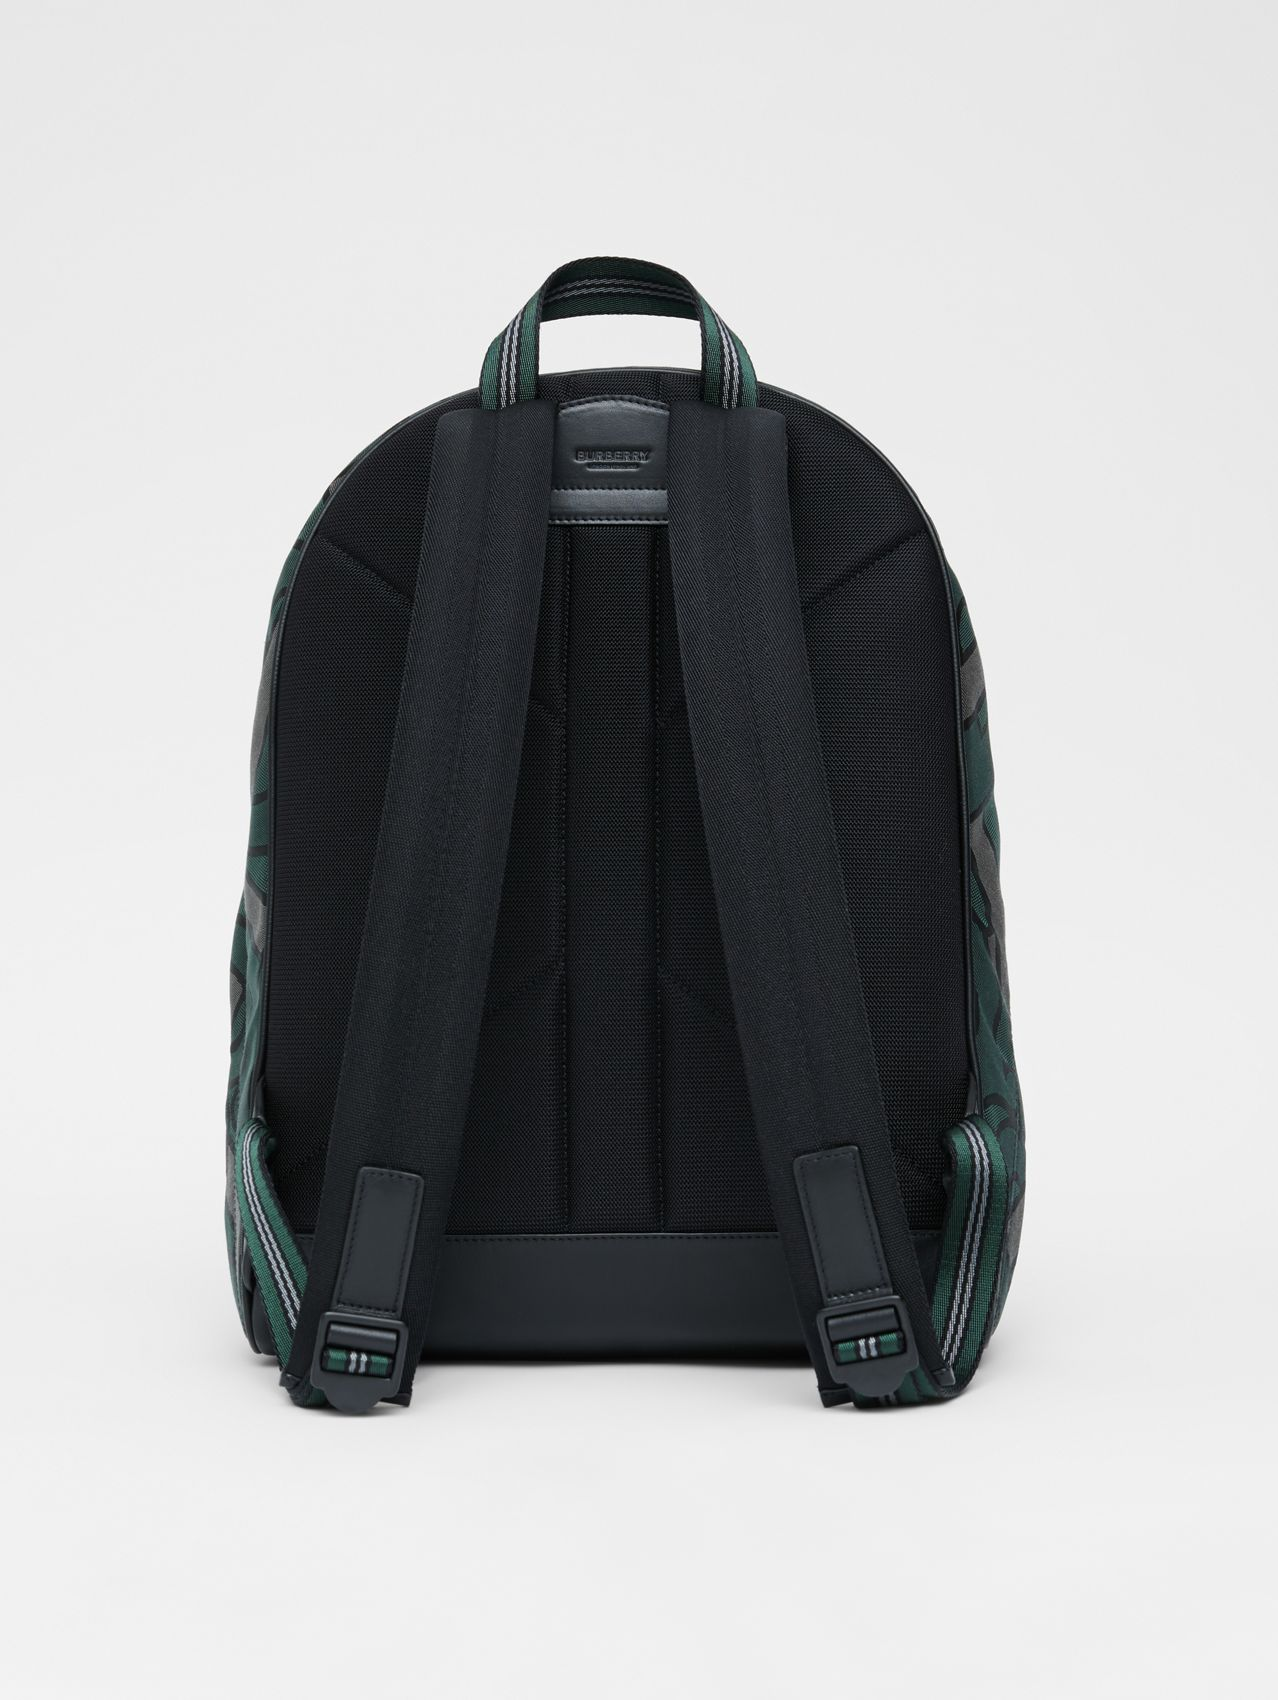 Monogram Recycled Polyester Jacquard Backpack in Forest Green